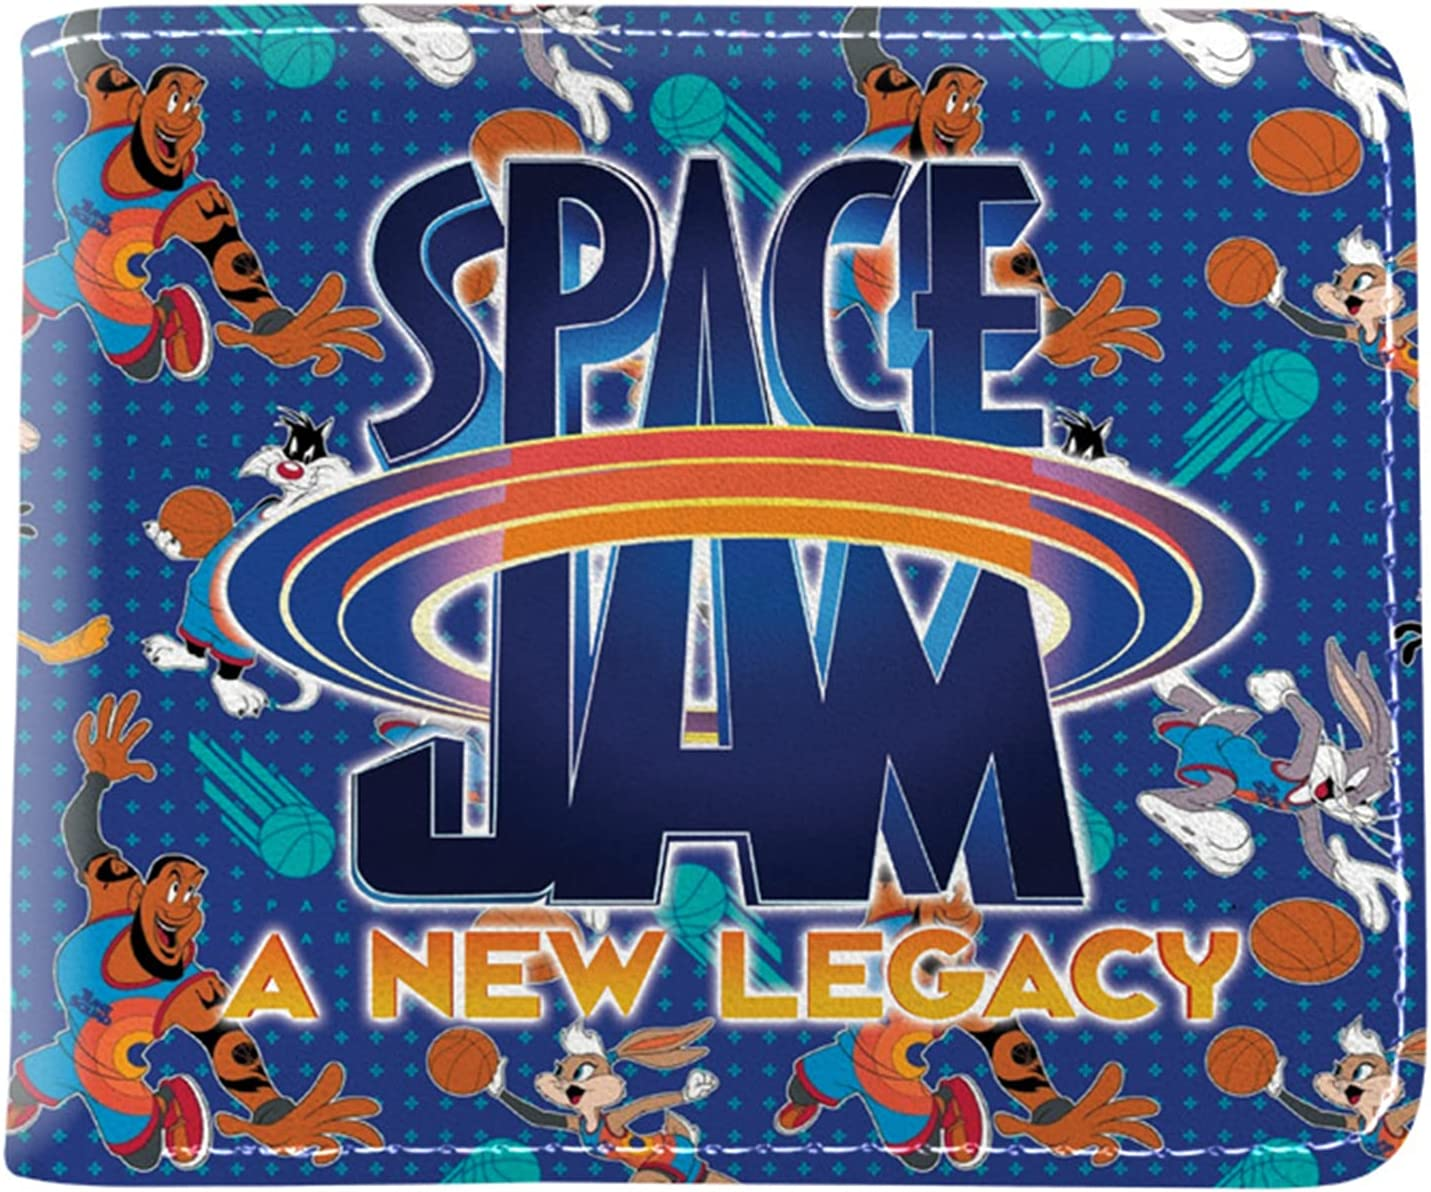 HNYL Space Jam 2 Wallet, PU Cartoon Colorful Space Jam A New Legacy Wallet for Men and Women (A)